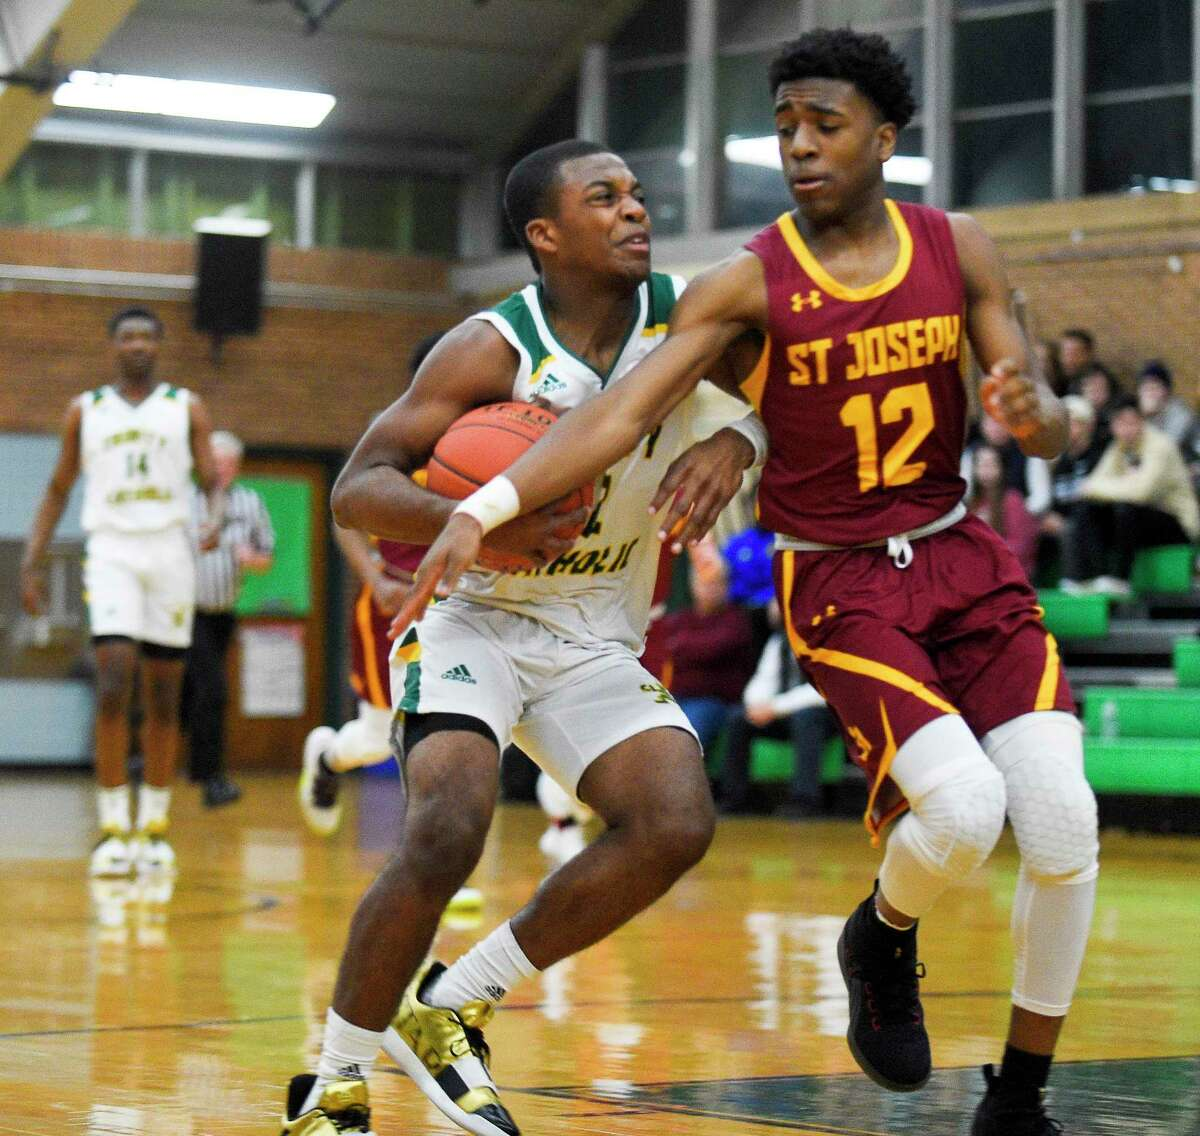 St Joseph Jason James (12) reachs on Trinity Catholic's Branden Louis (12) drive to the basket in a boys basketball game at Walsh Court on Jan. 7, 2020 in Stamford, Connecticut.